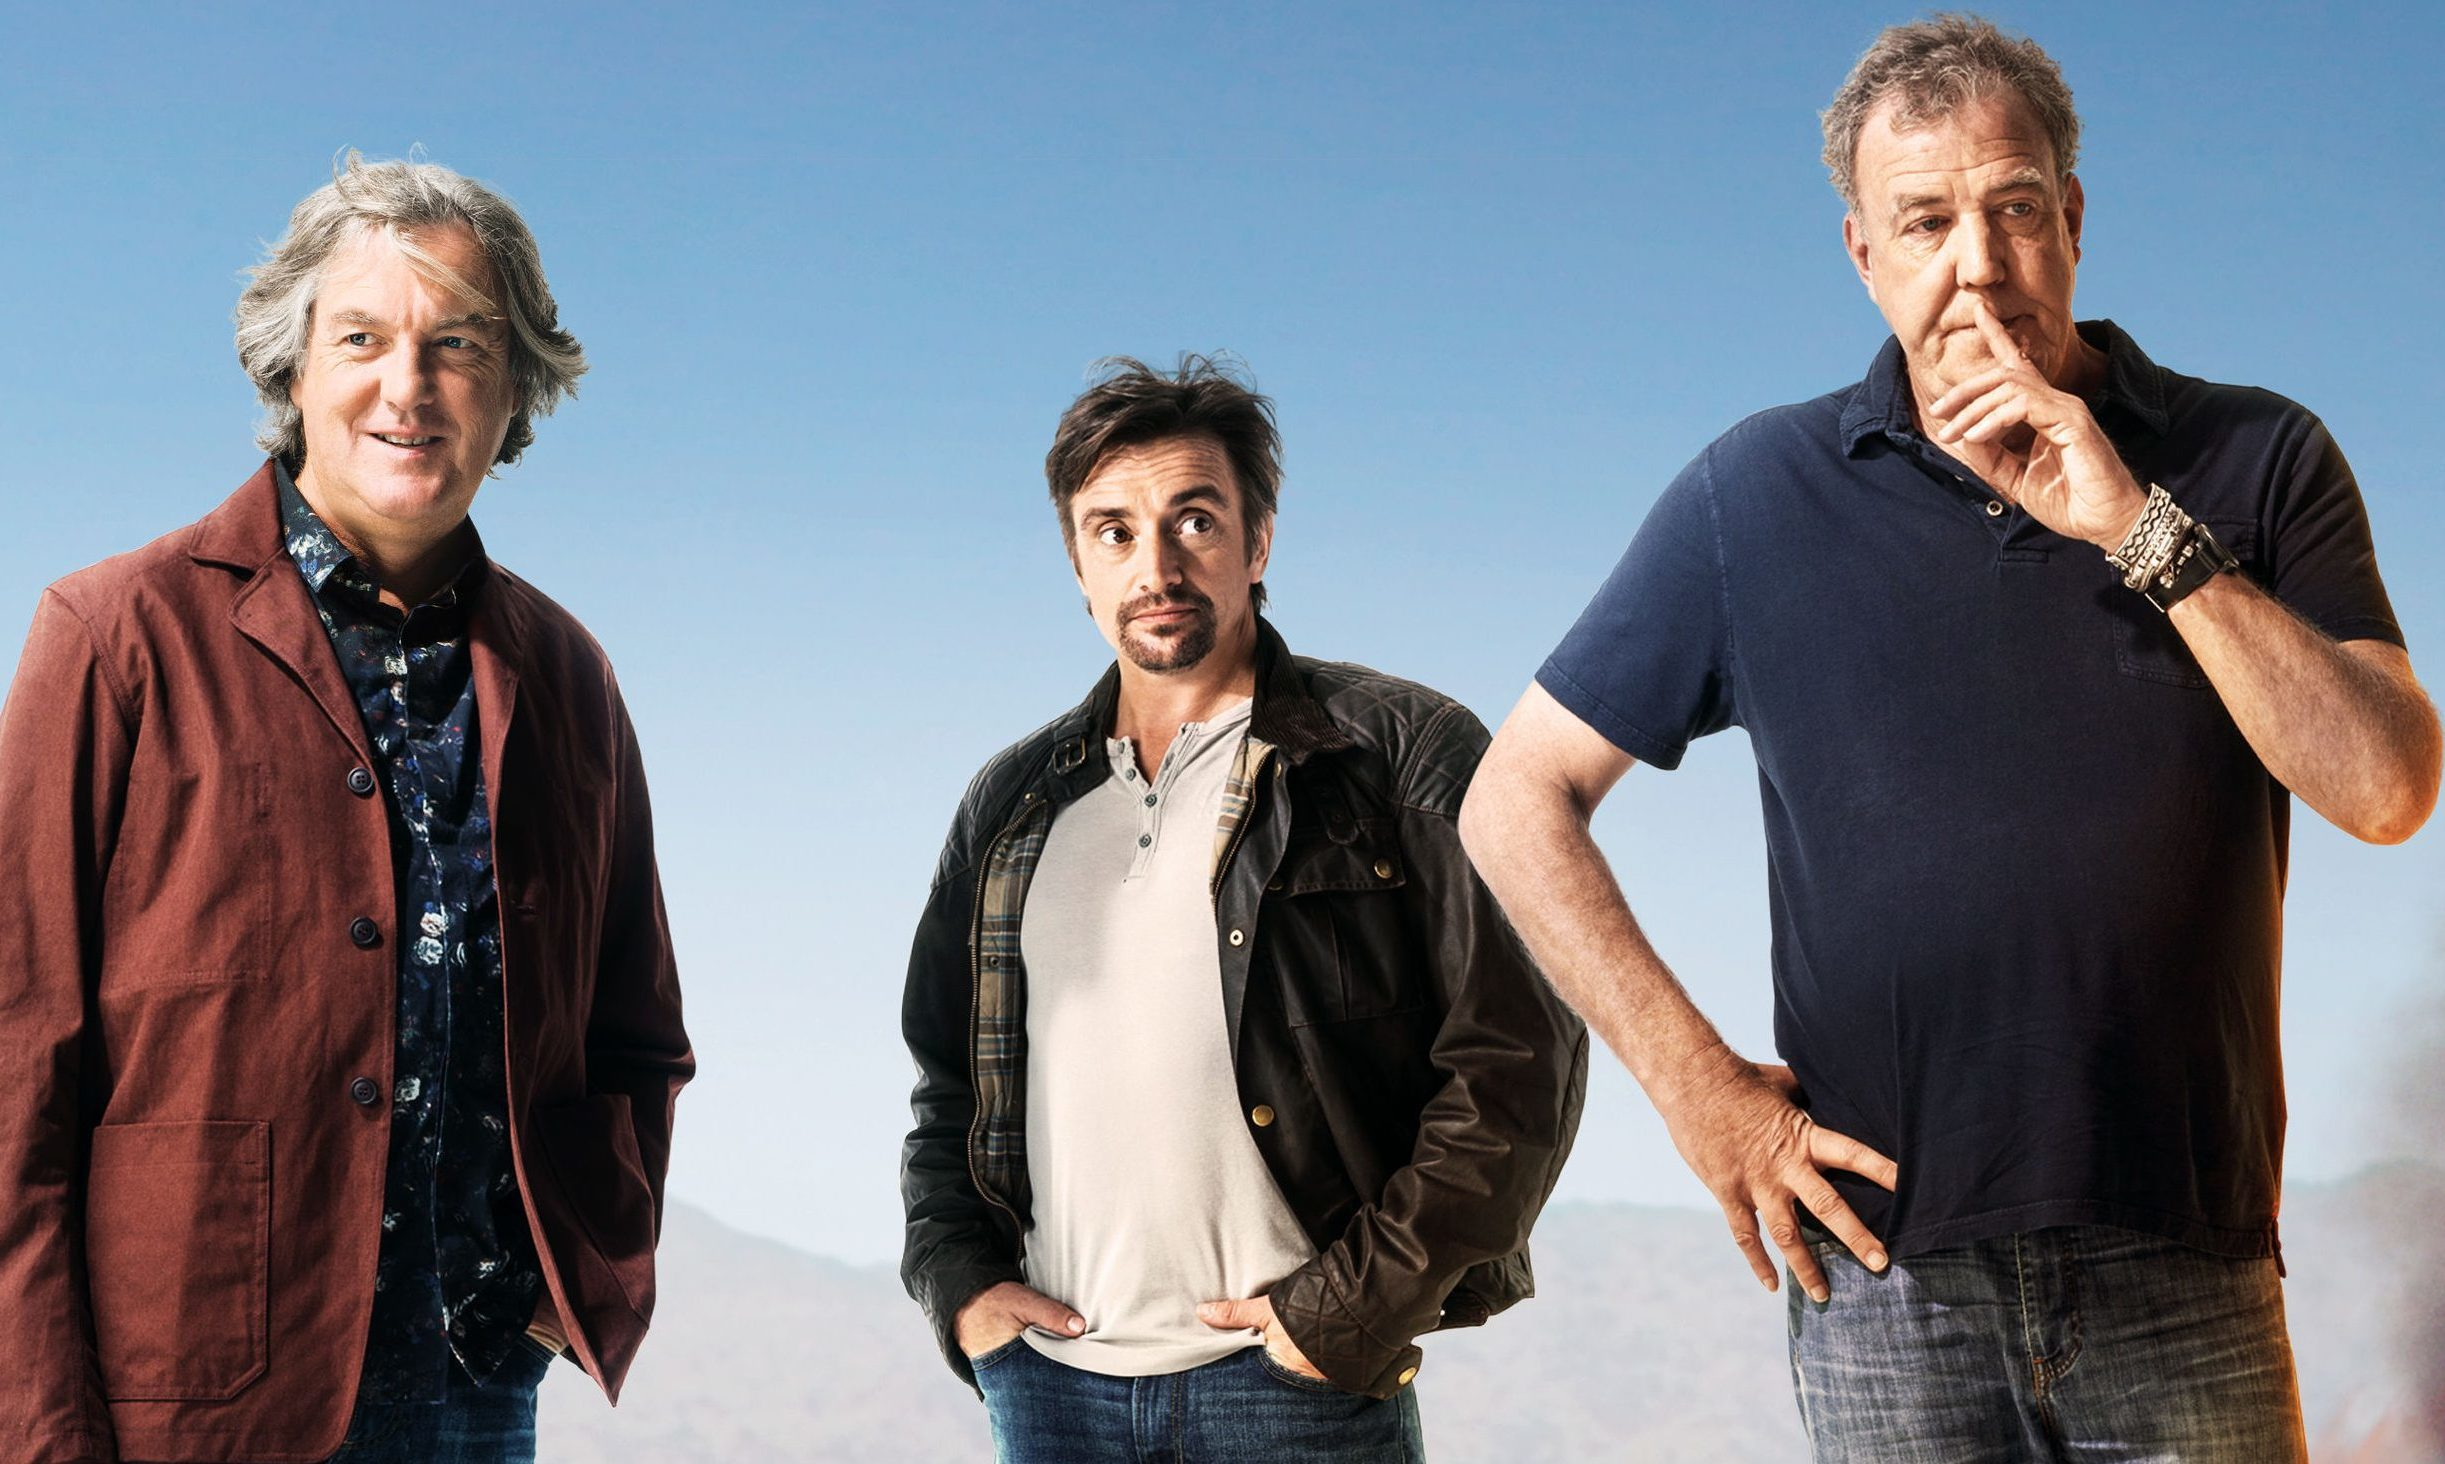 James May, Richard Hammond and Jeremy Clarkson present The Grand Tour